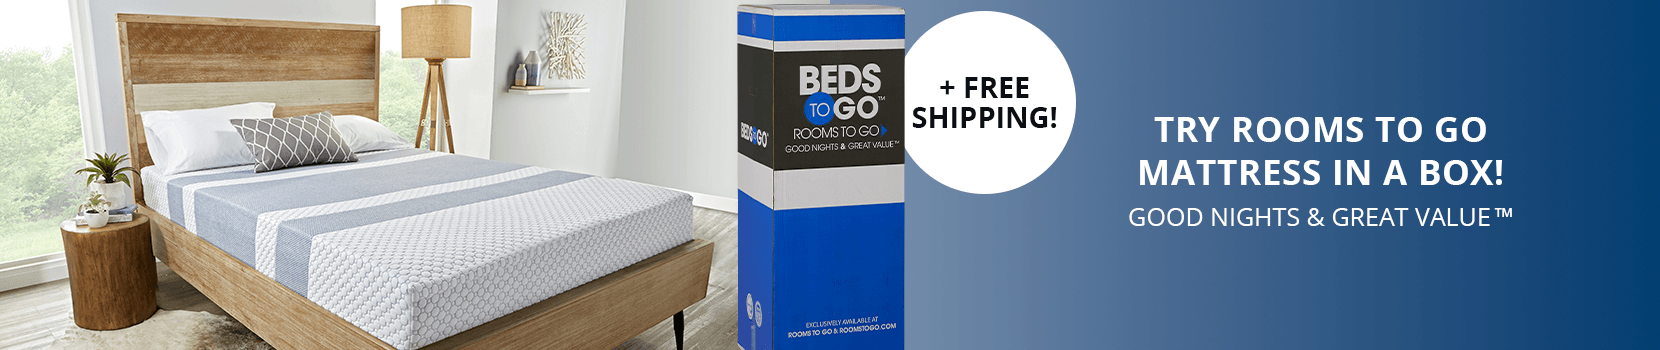 try rooms to go mattress in a box! good nights & great value. + free shipping!